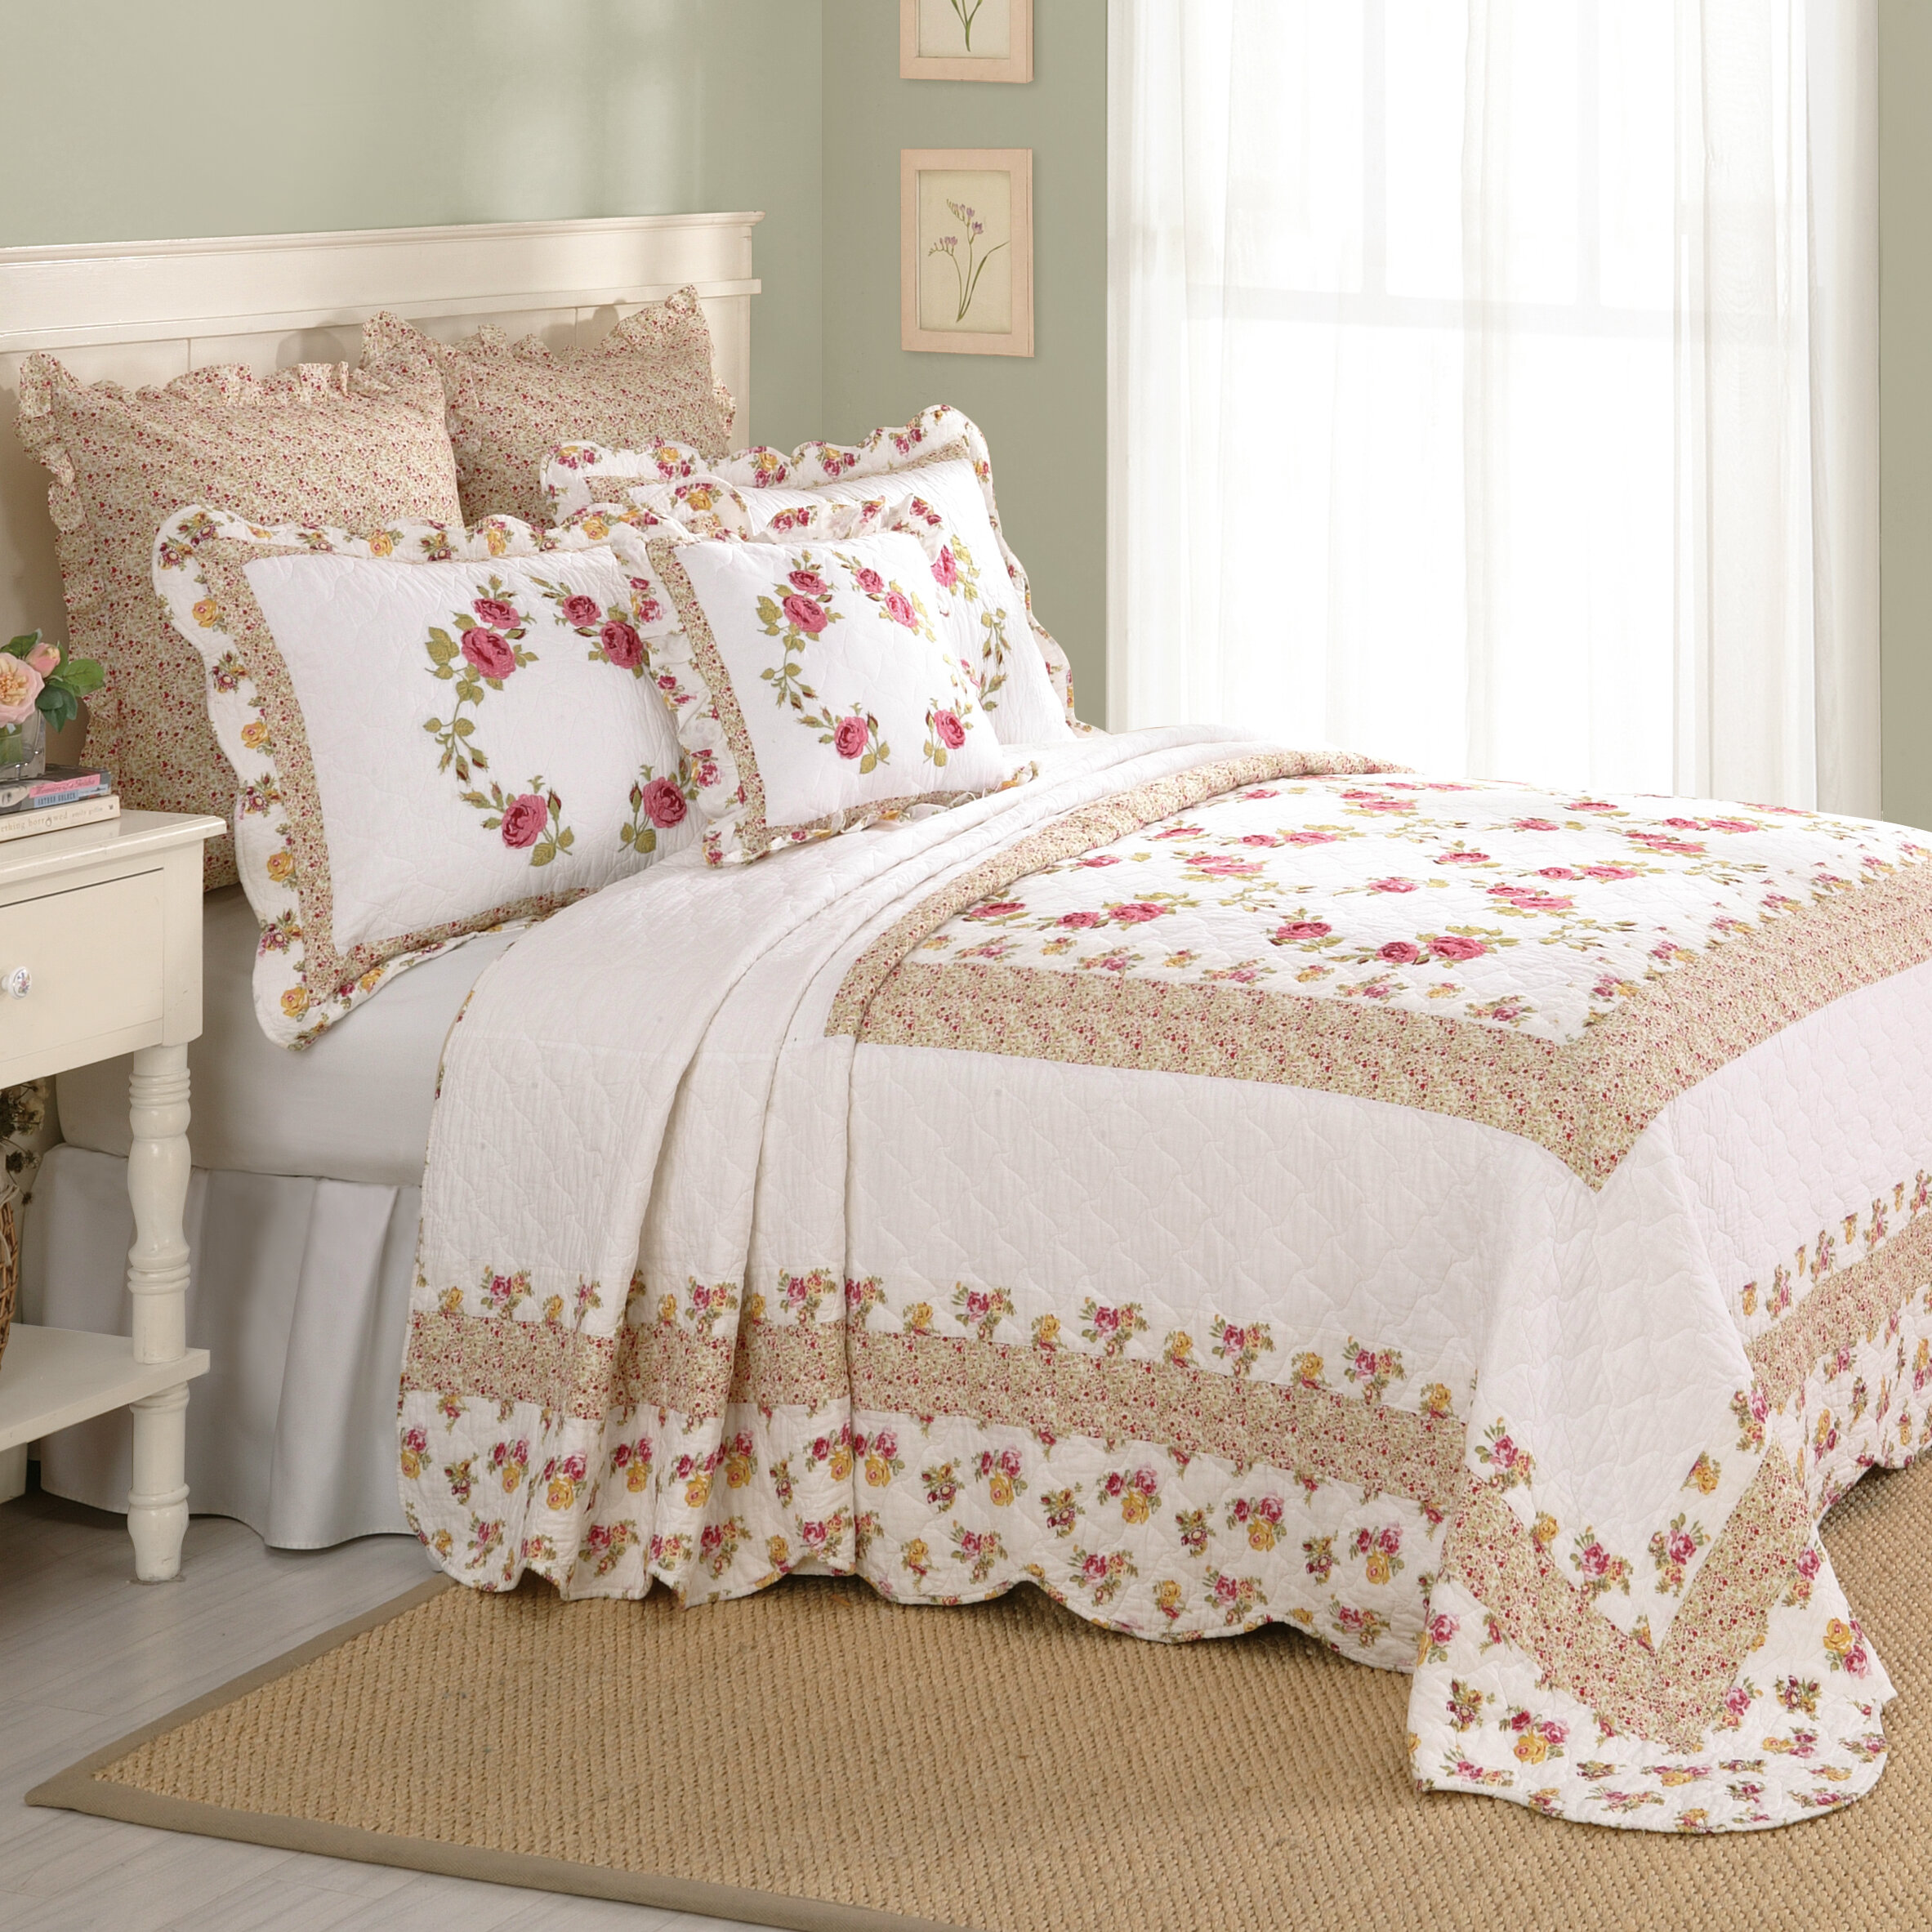 p quilted light quilt bedspread cream felisa embroidered floral